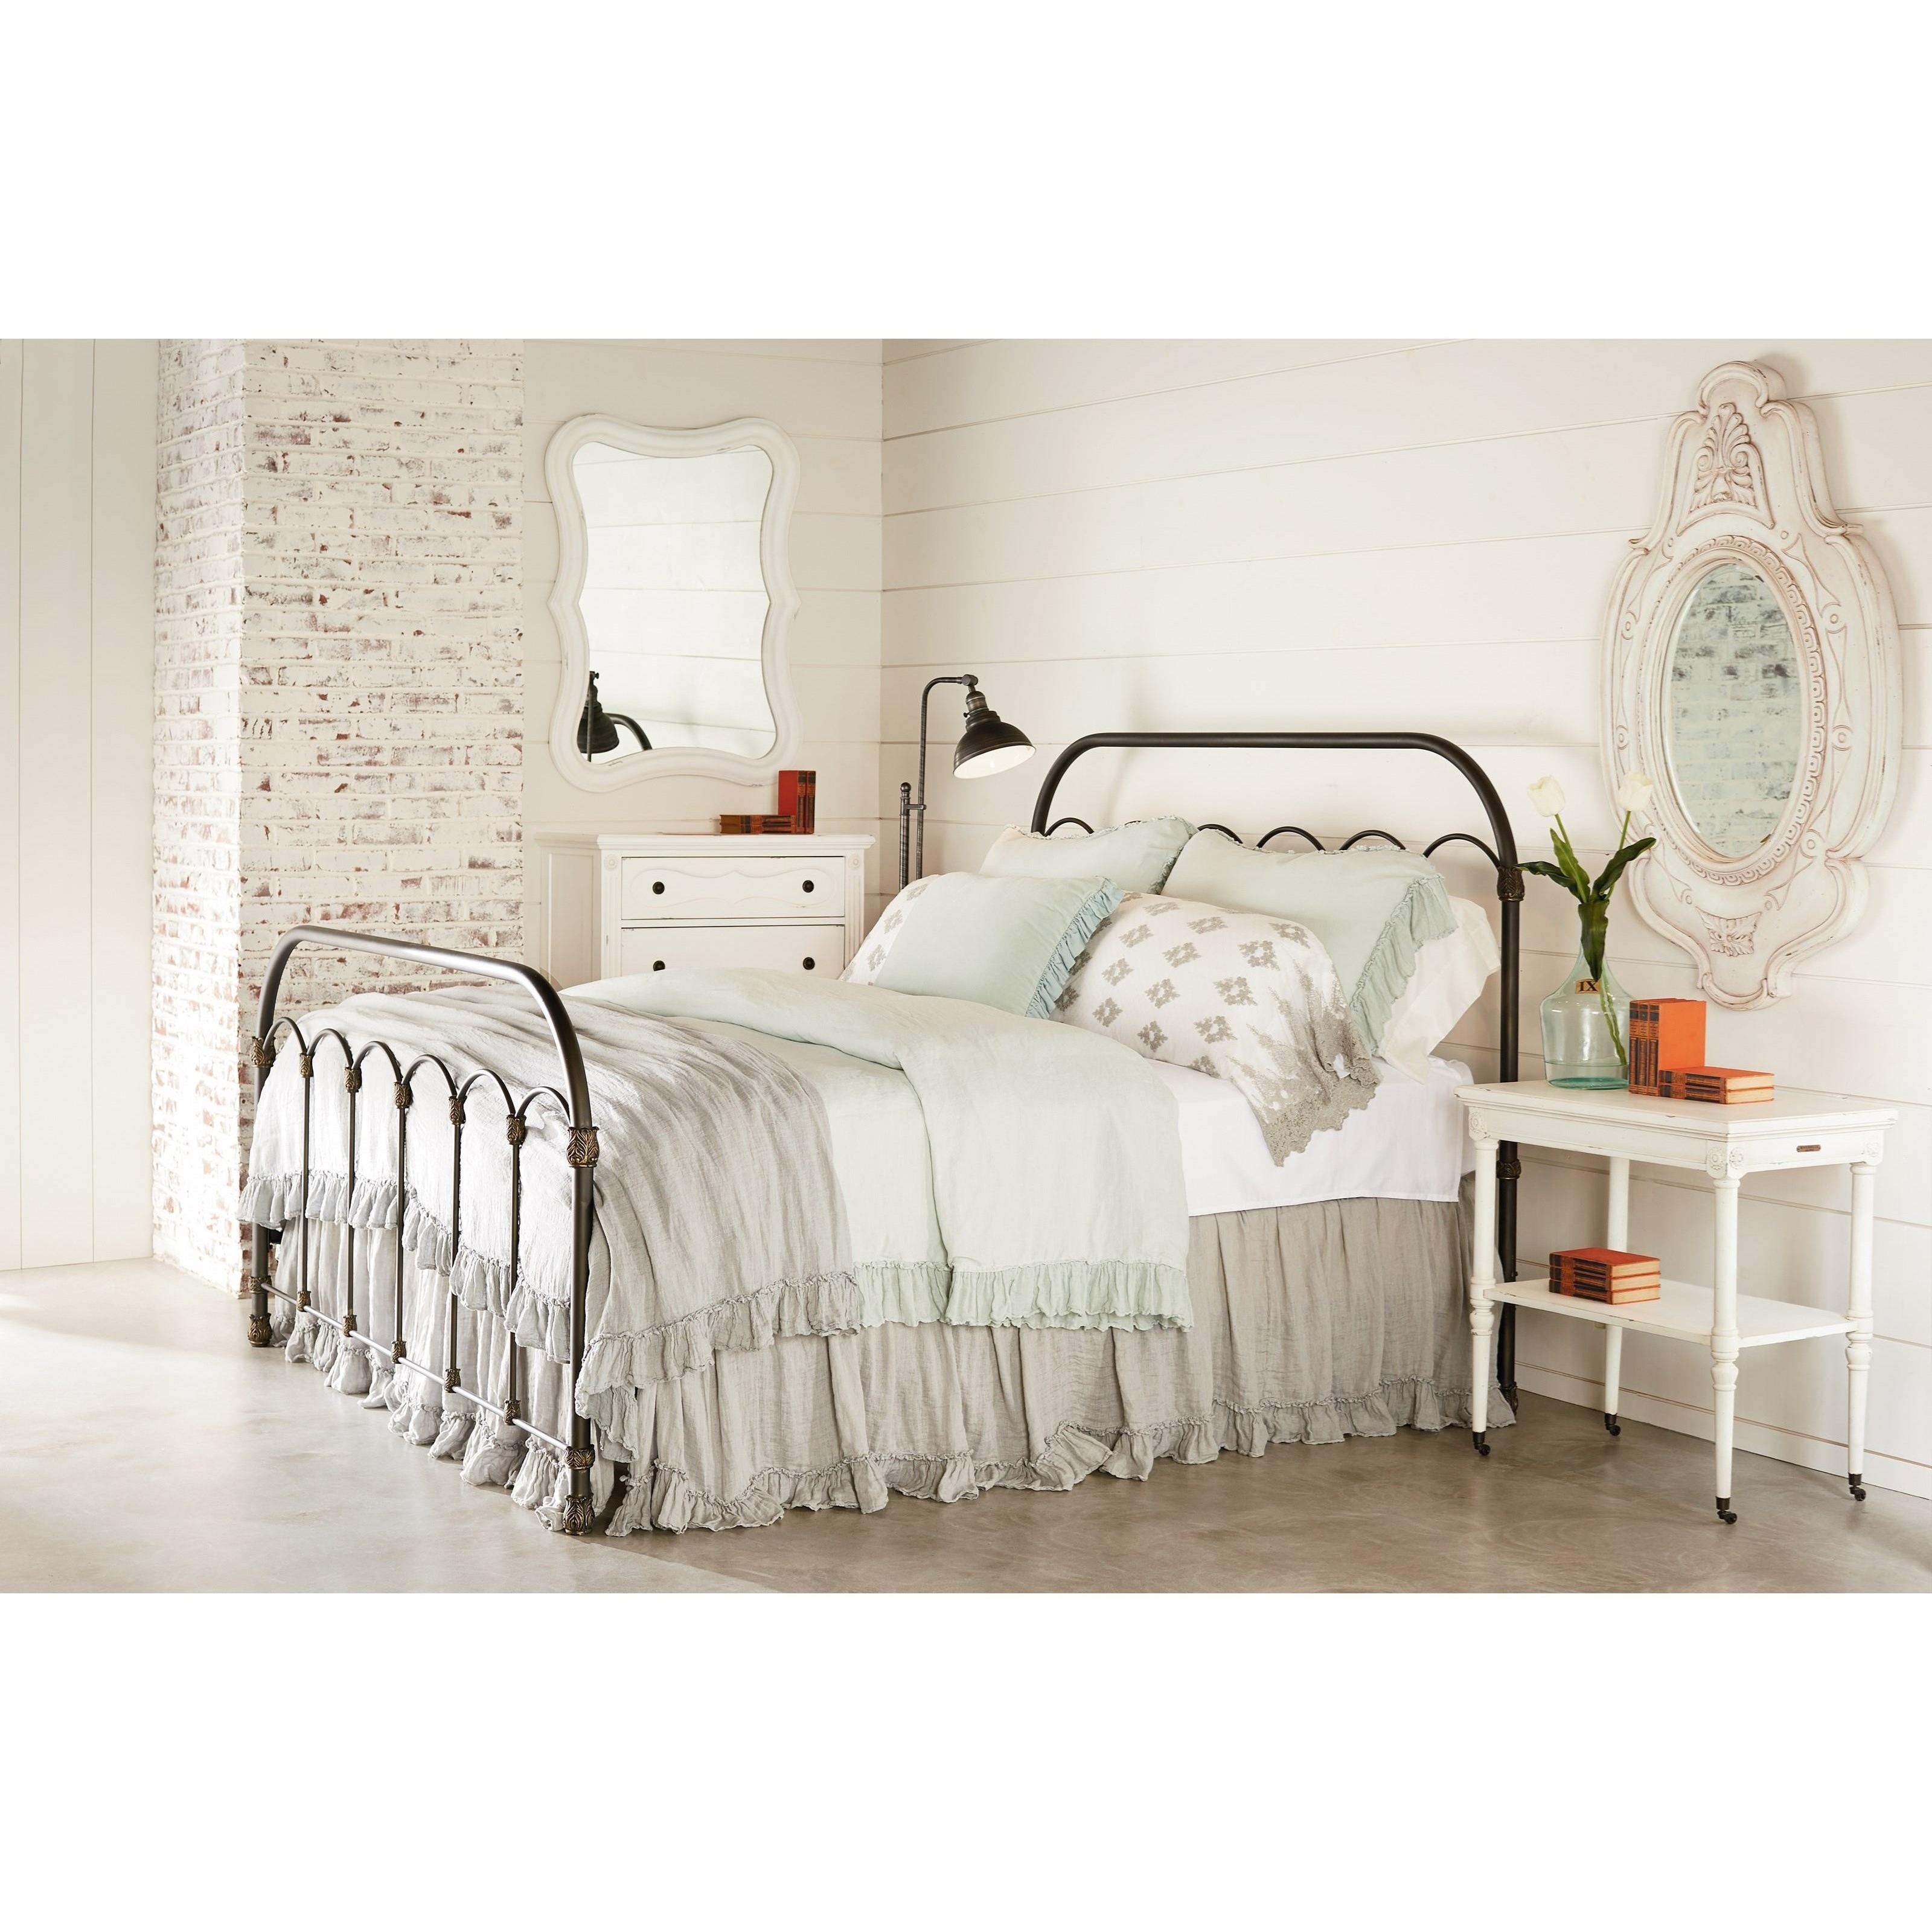 Magnolia home by joanna gaines french inspired silhouette for French inspired bedroom